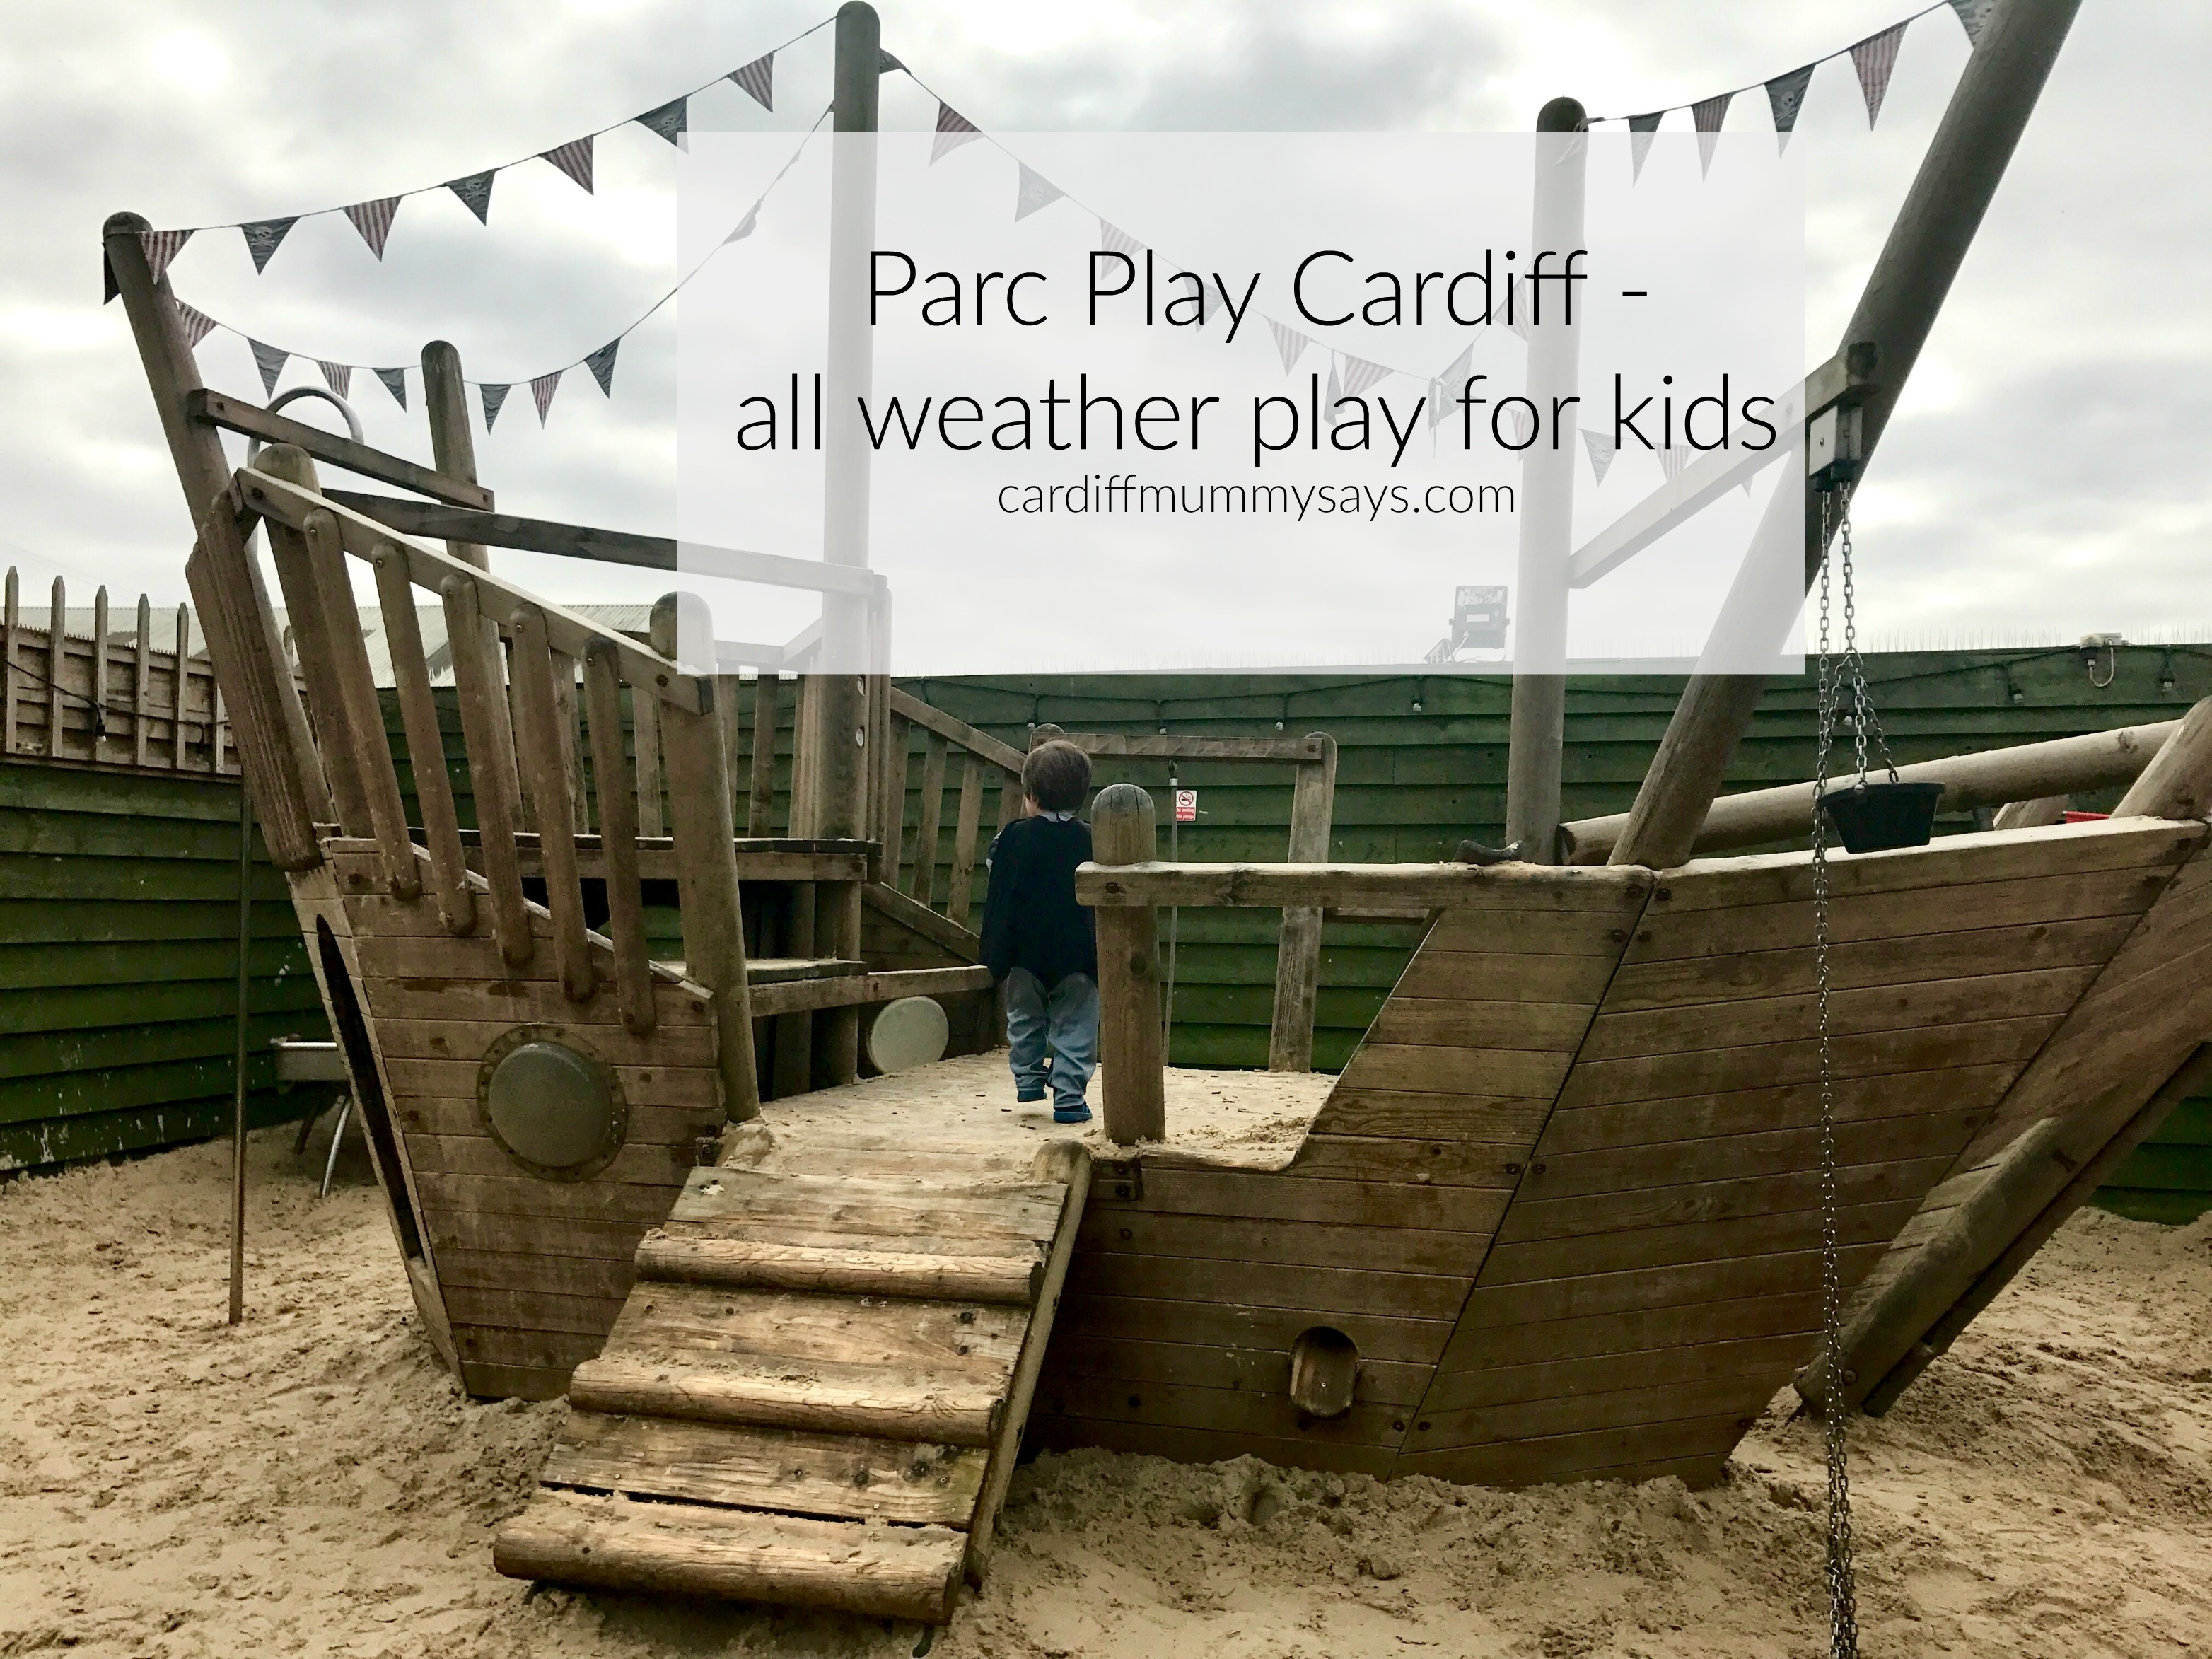 All-weather fun at Parc Play Cardiff toddler events